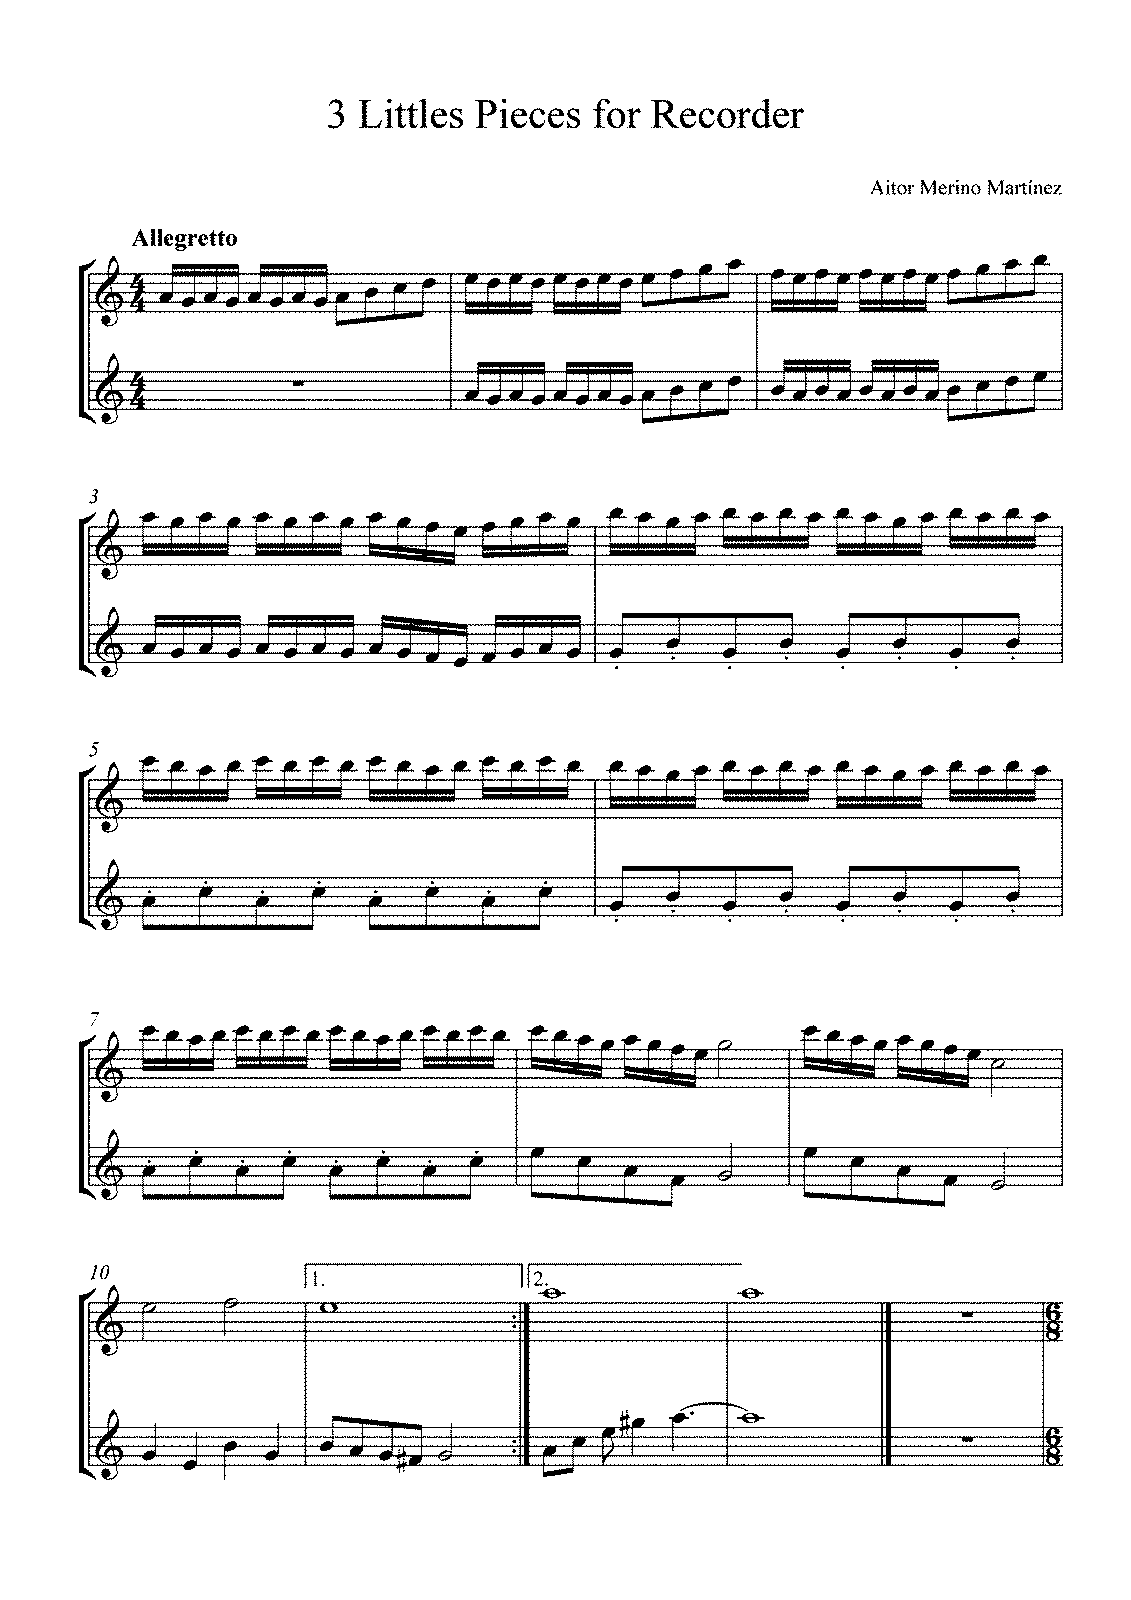 PMLP516022-3 littles pieces for recorder.pdf